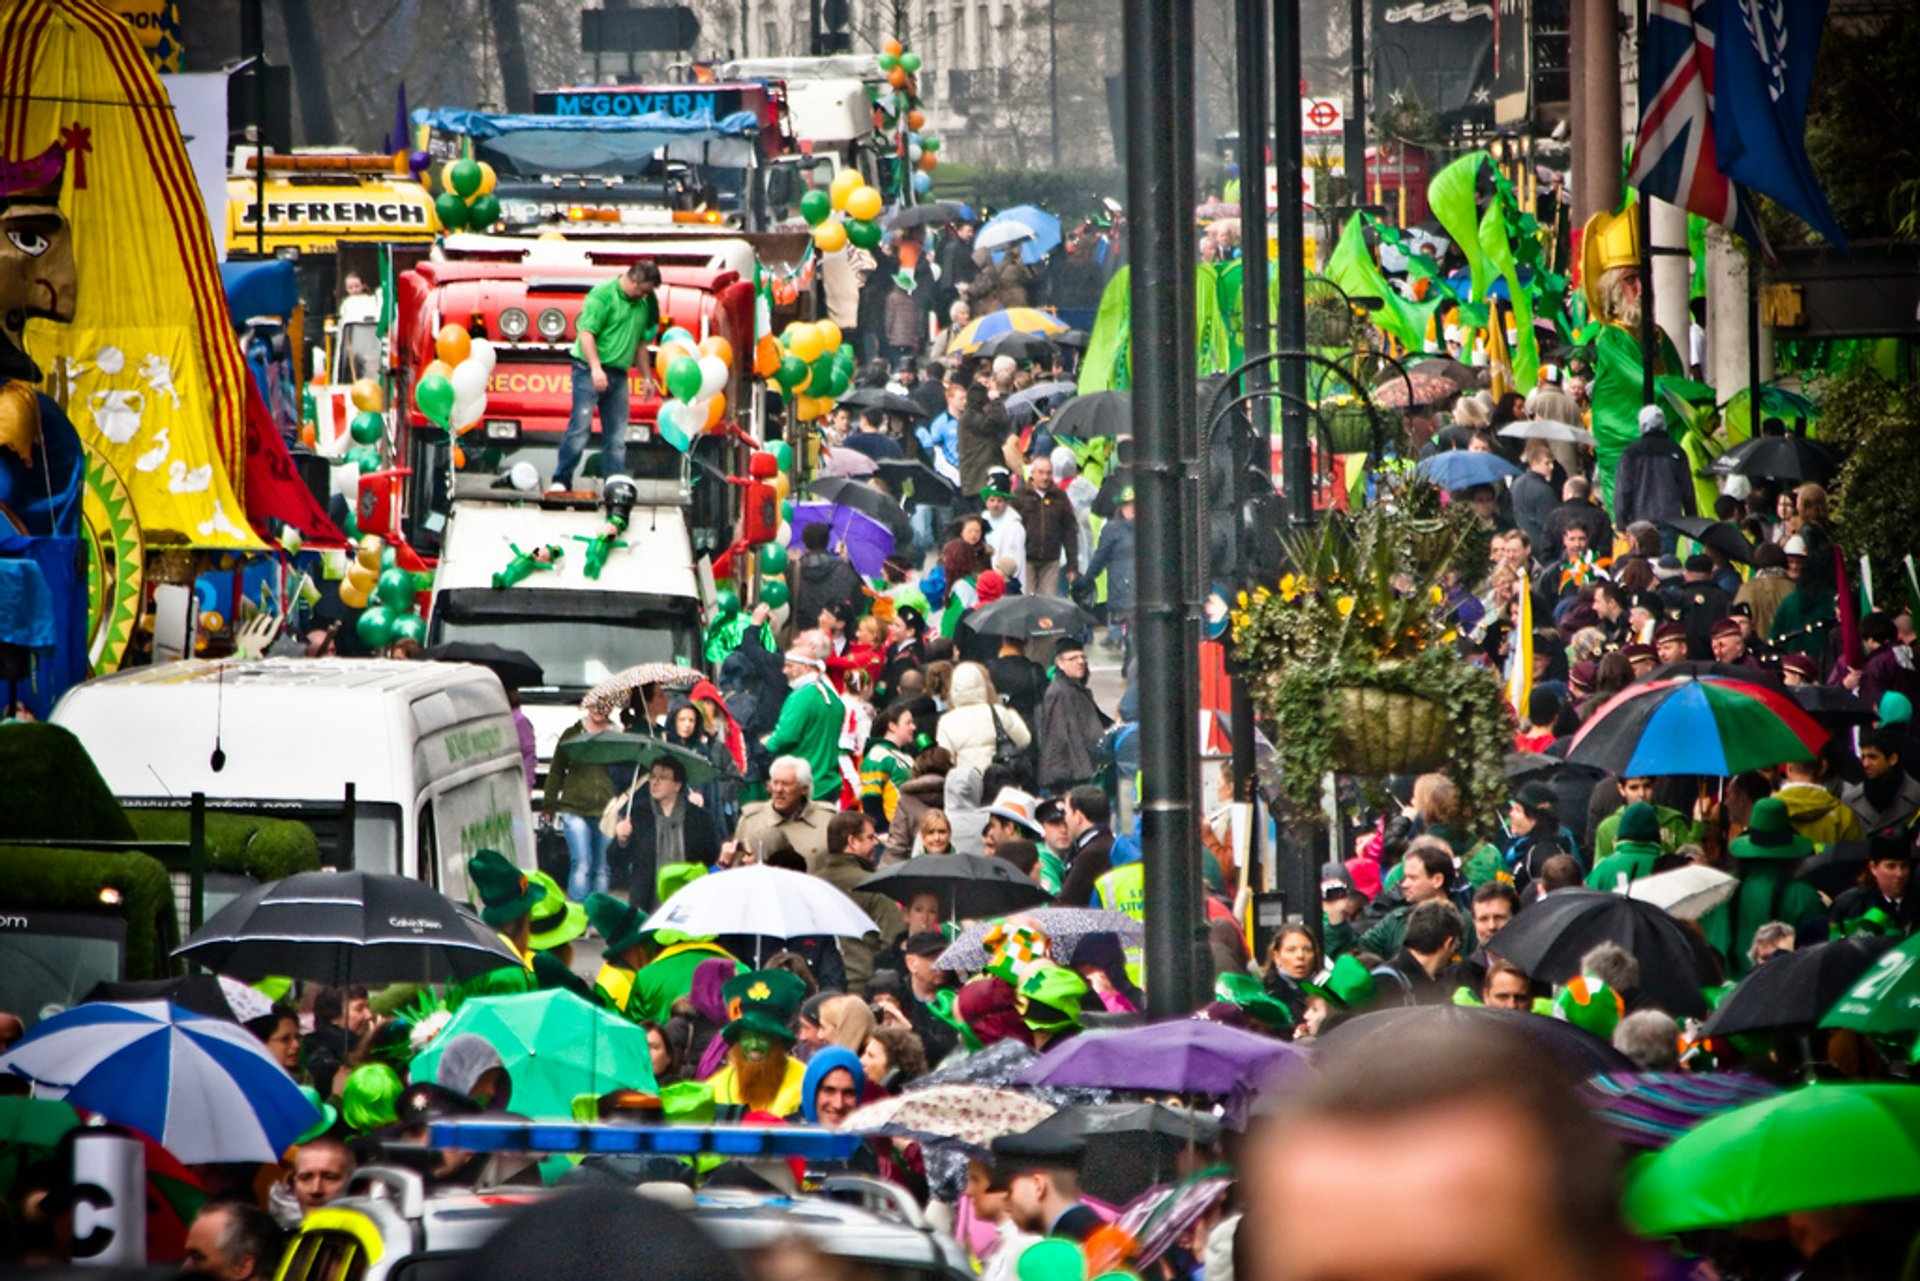 St Patrick's Day Parade in London 2020 - Best Time